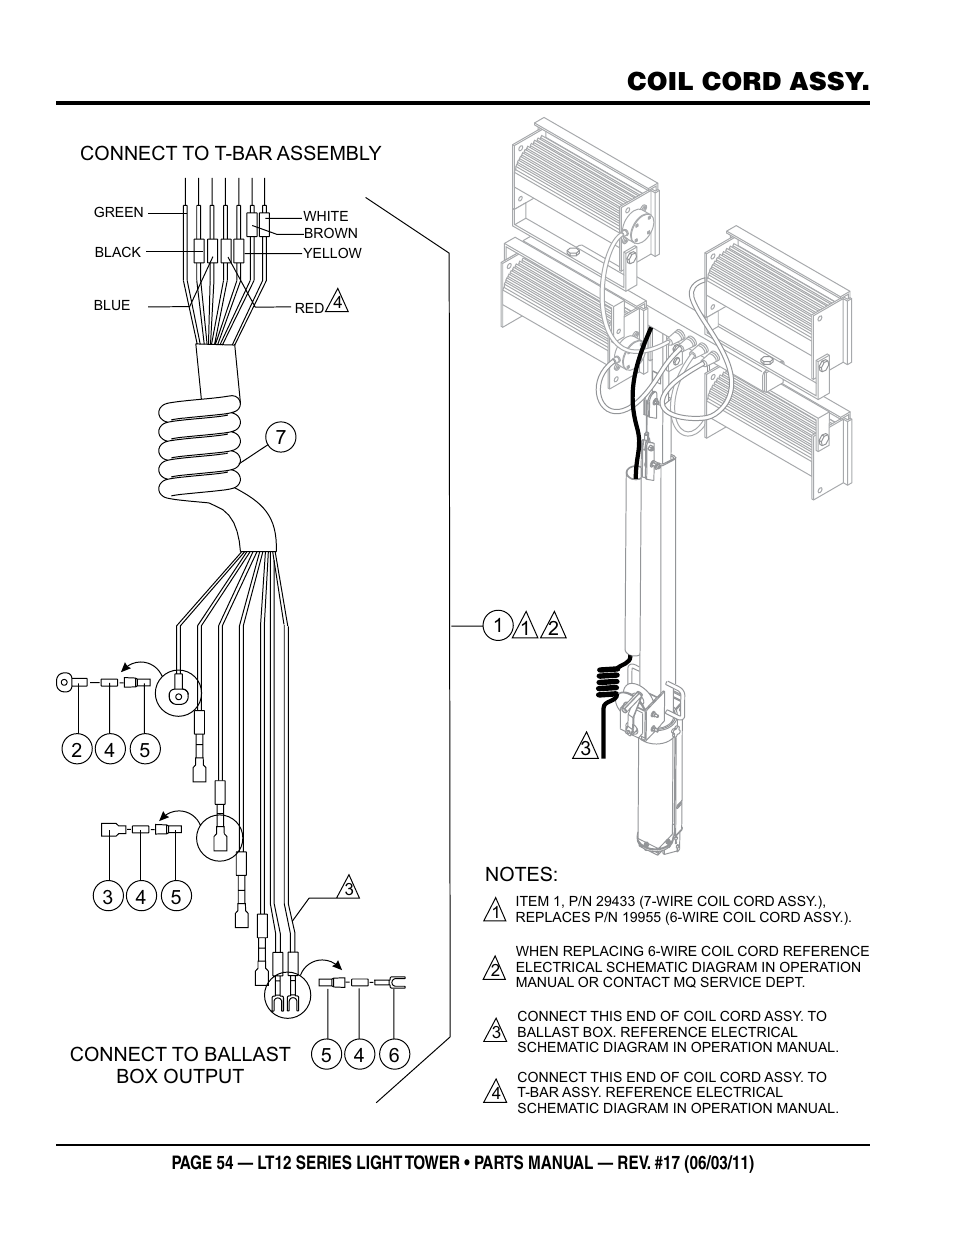 Wiring Schematic Nighthawk Light Tower Explained Diagrams Diagram Coil Cord Assy Multiquip Series Dedicated Truck